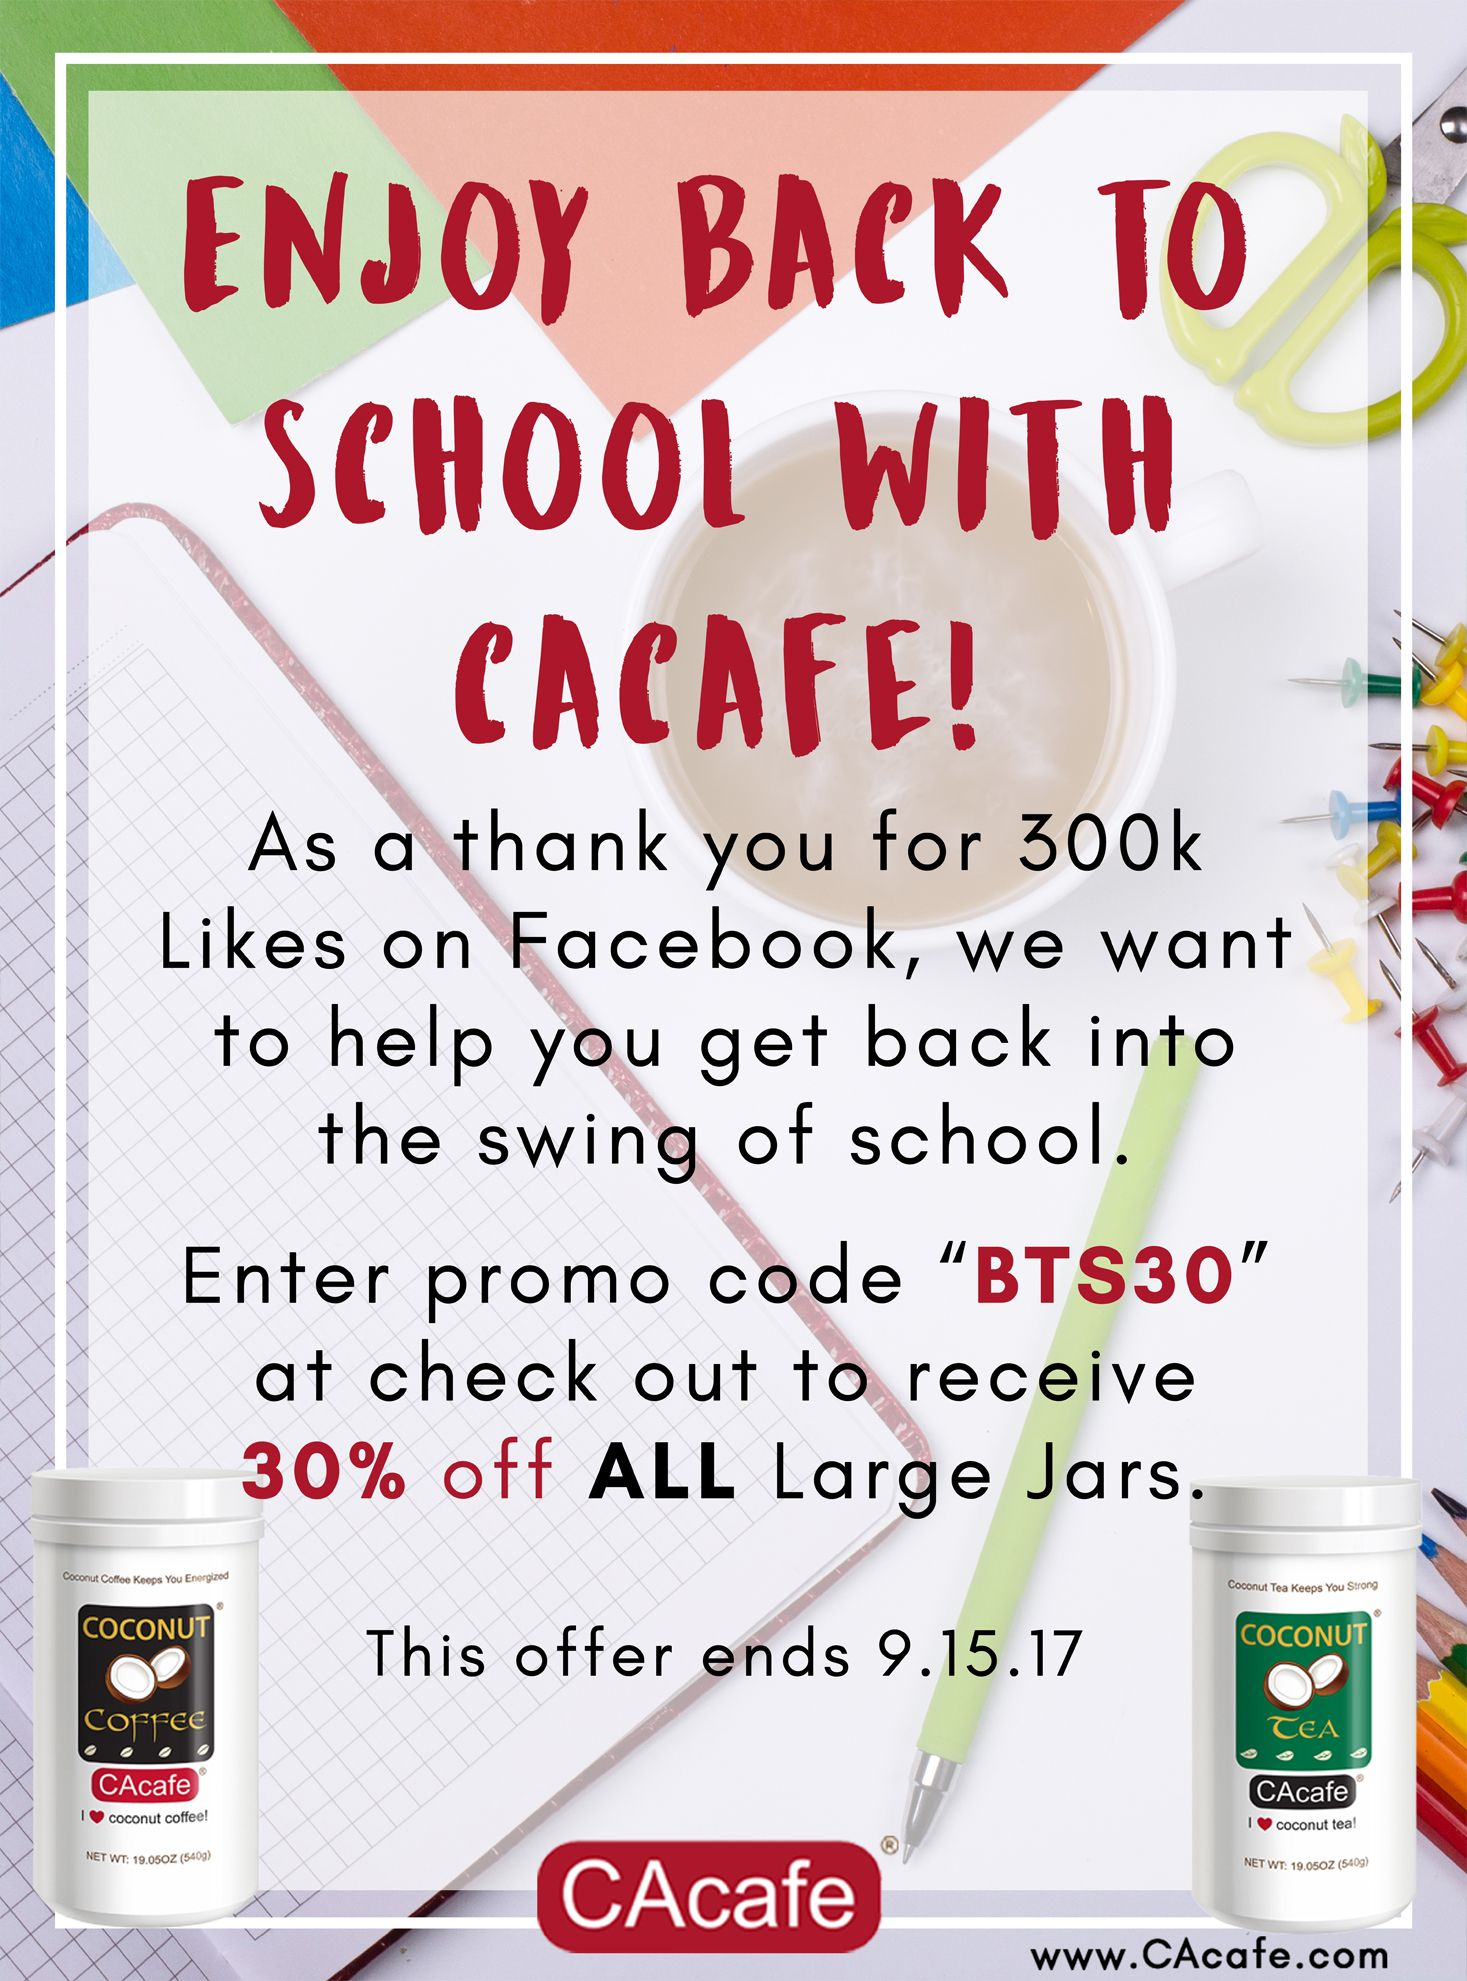 Enjoy BacktoSchool with CAcafe. Get 30 off all Large